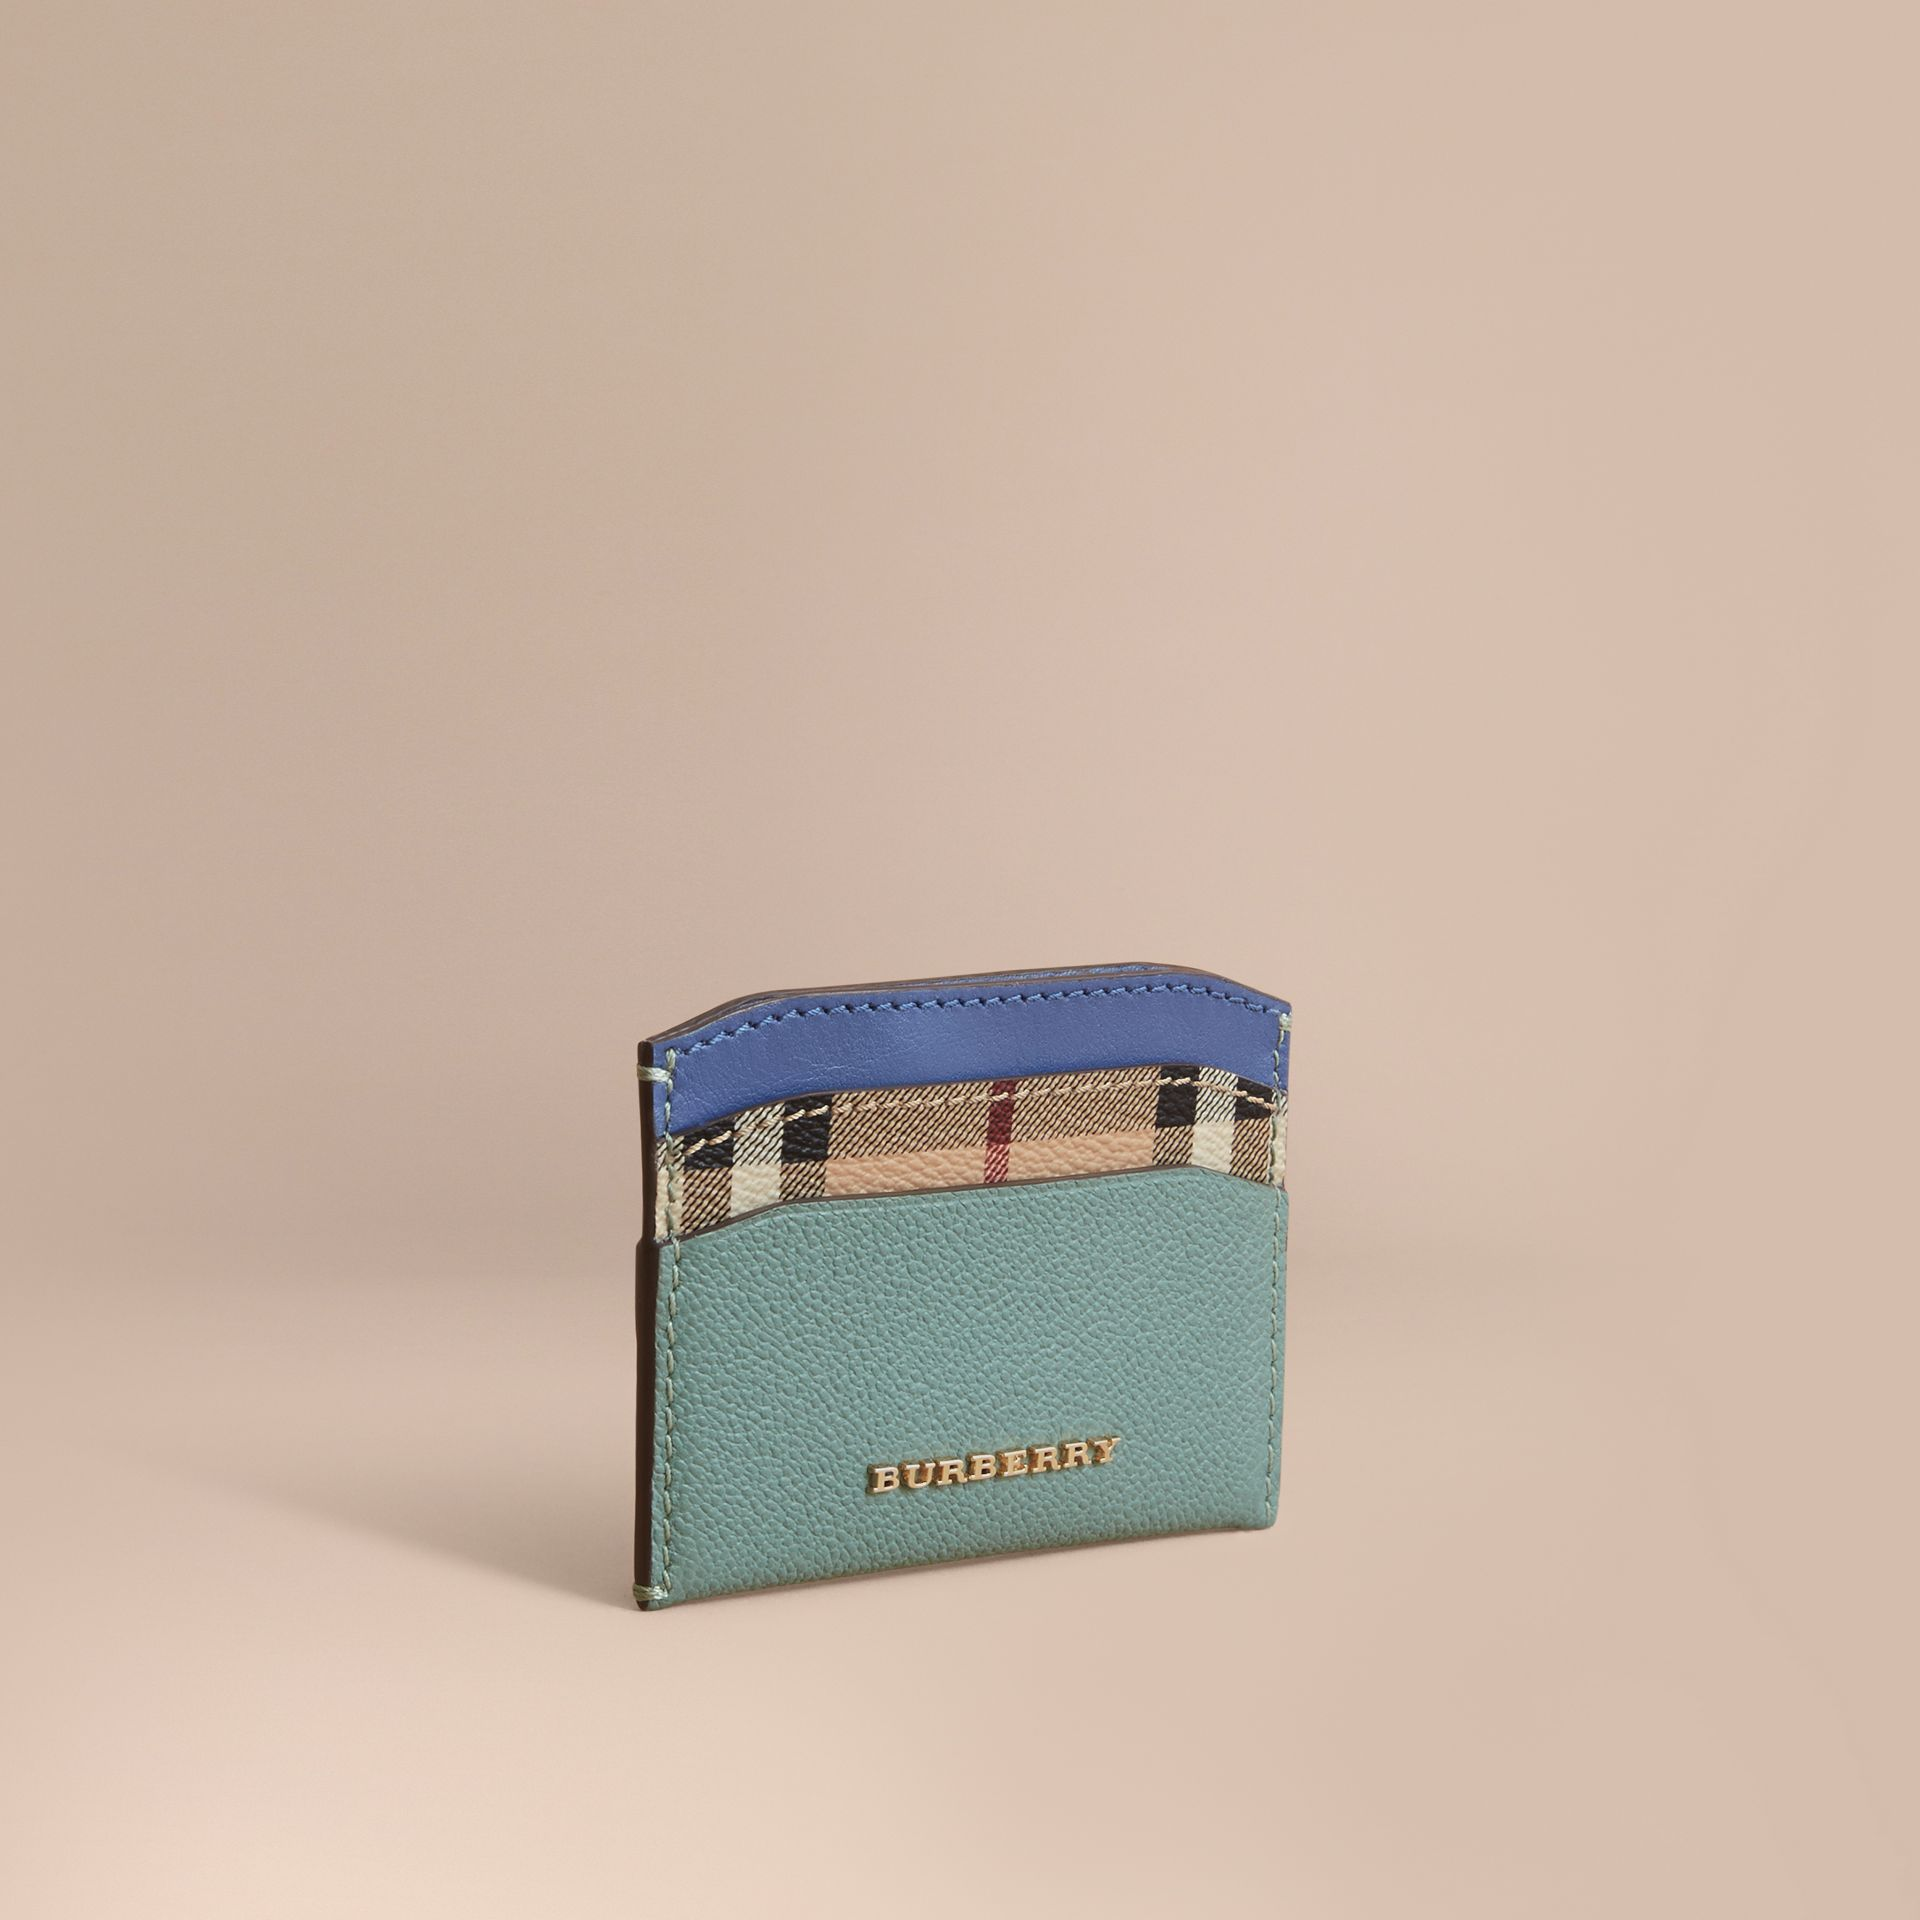 Colour Block Leather and Haymarket Check Card Case in Eucalyptus Grn/multi - Women | Burberry - gallery image 1